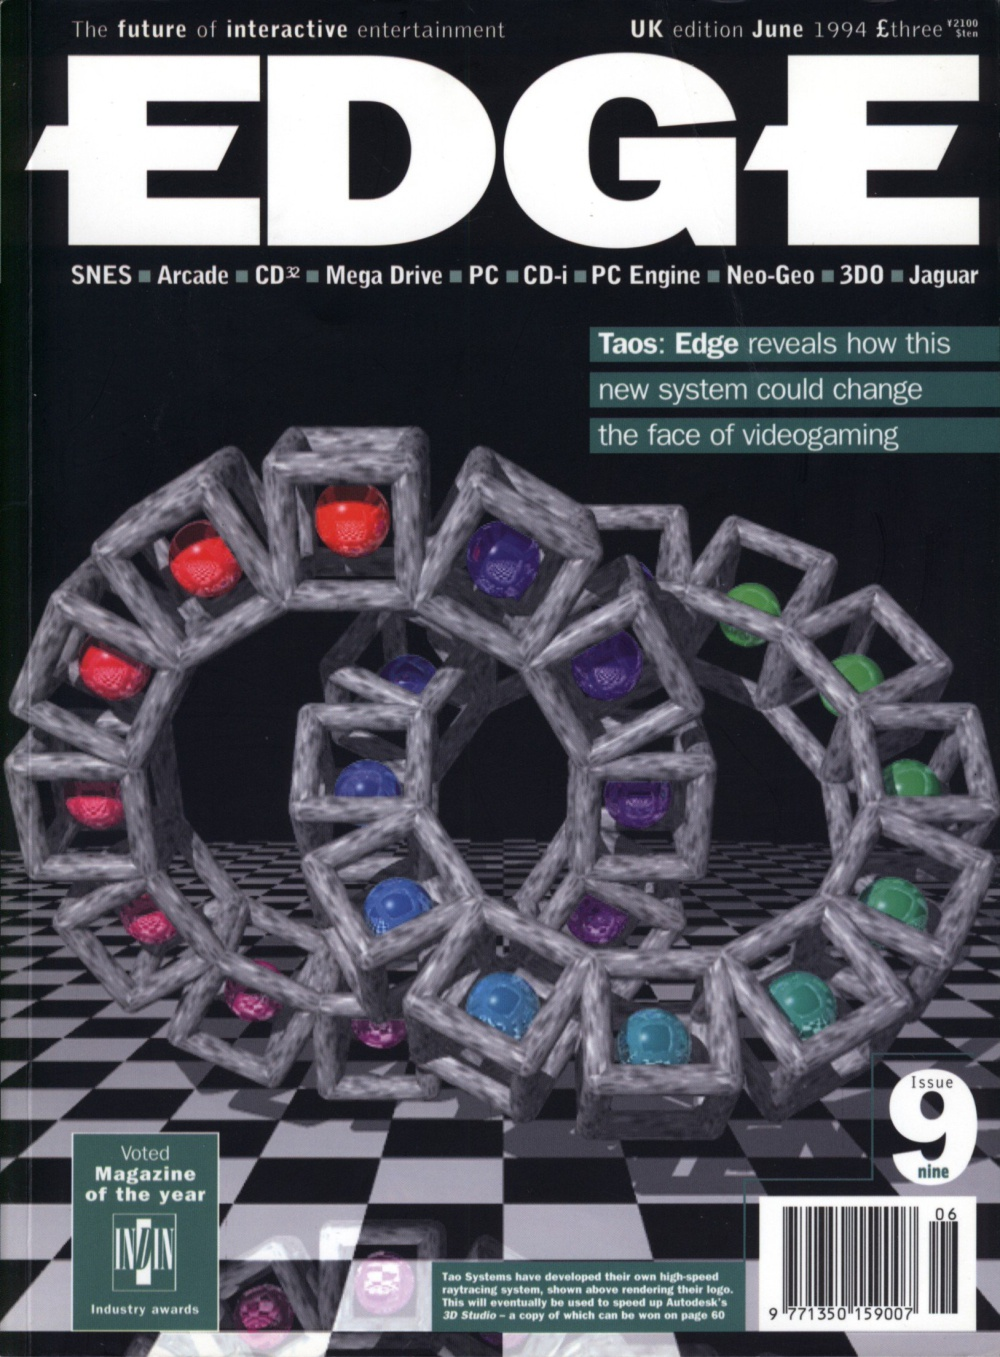 Edge - Issue 9 - June 1994 Magazine - Computing History